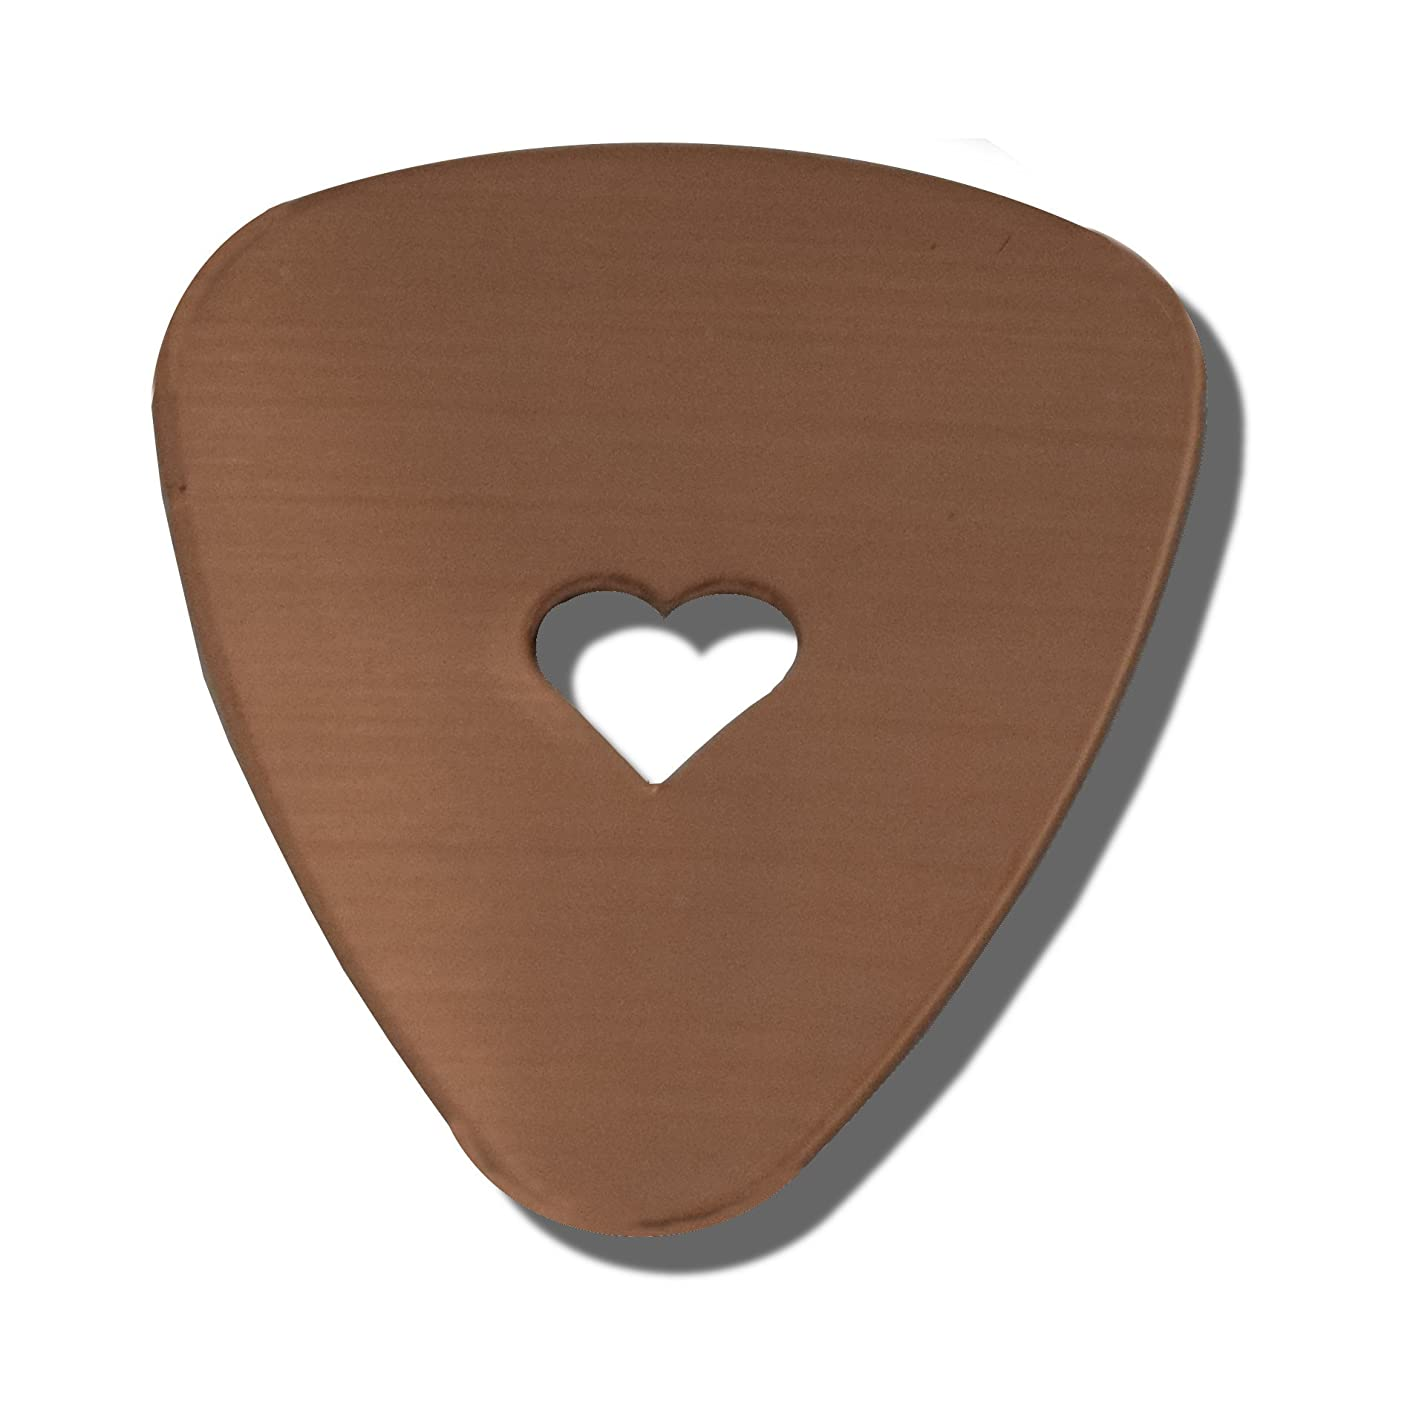 RMP Stamping Blanks, Guitar Pick With 1/4 Inch Heart Center Cutout, 16 Oz. Copper, 24 Gauge - 10 Pack